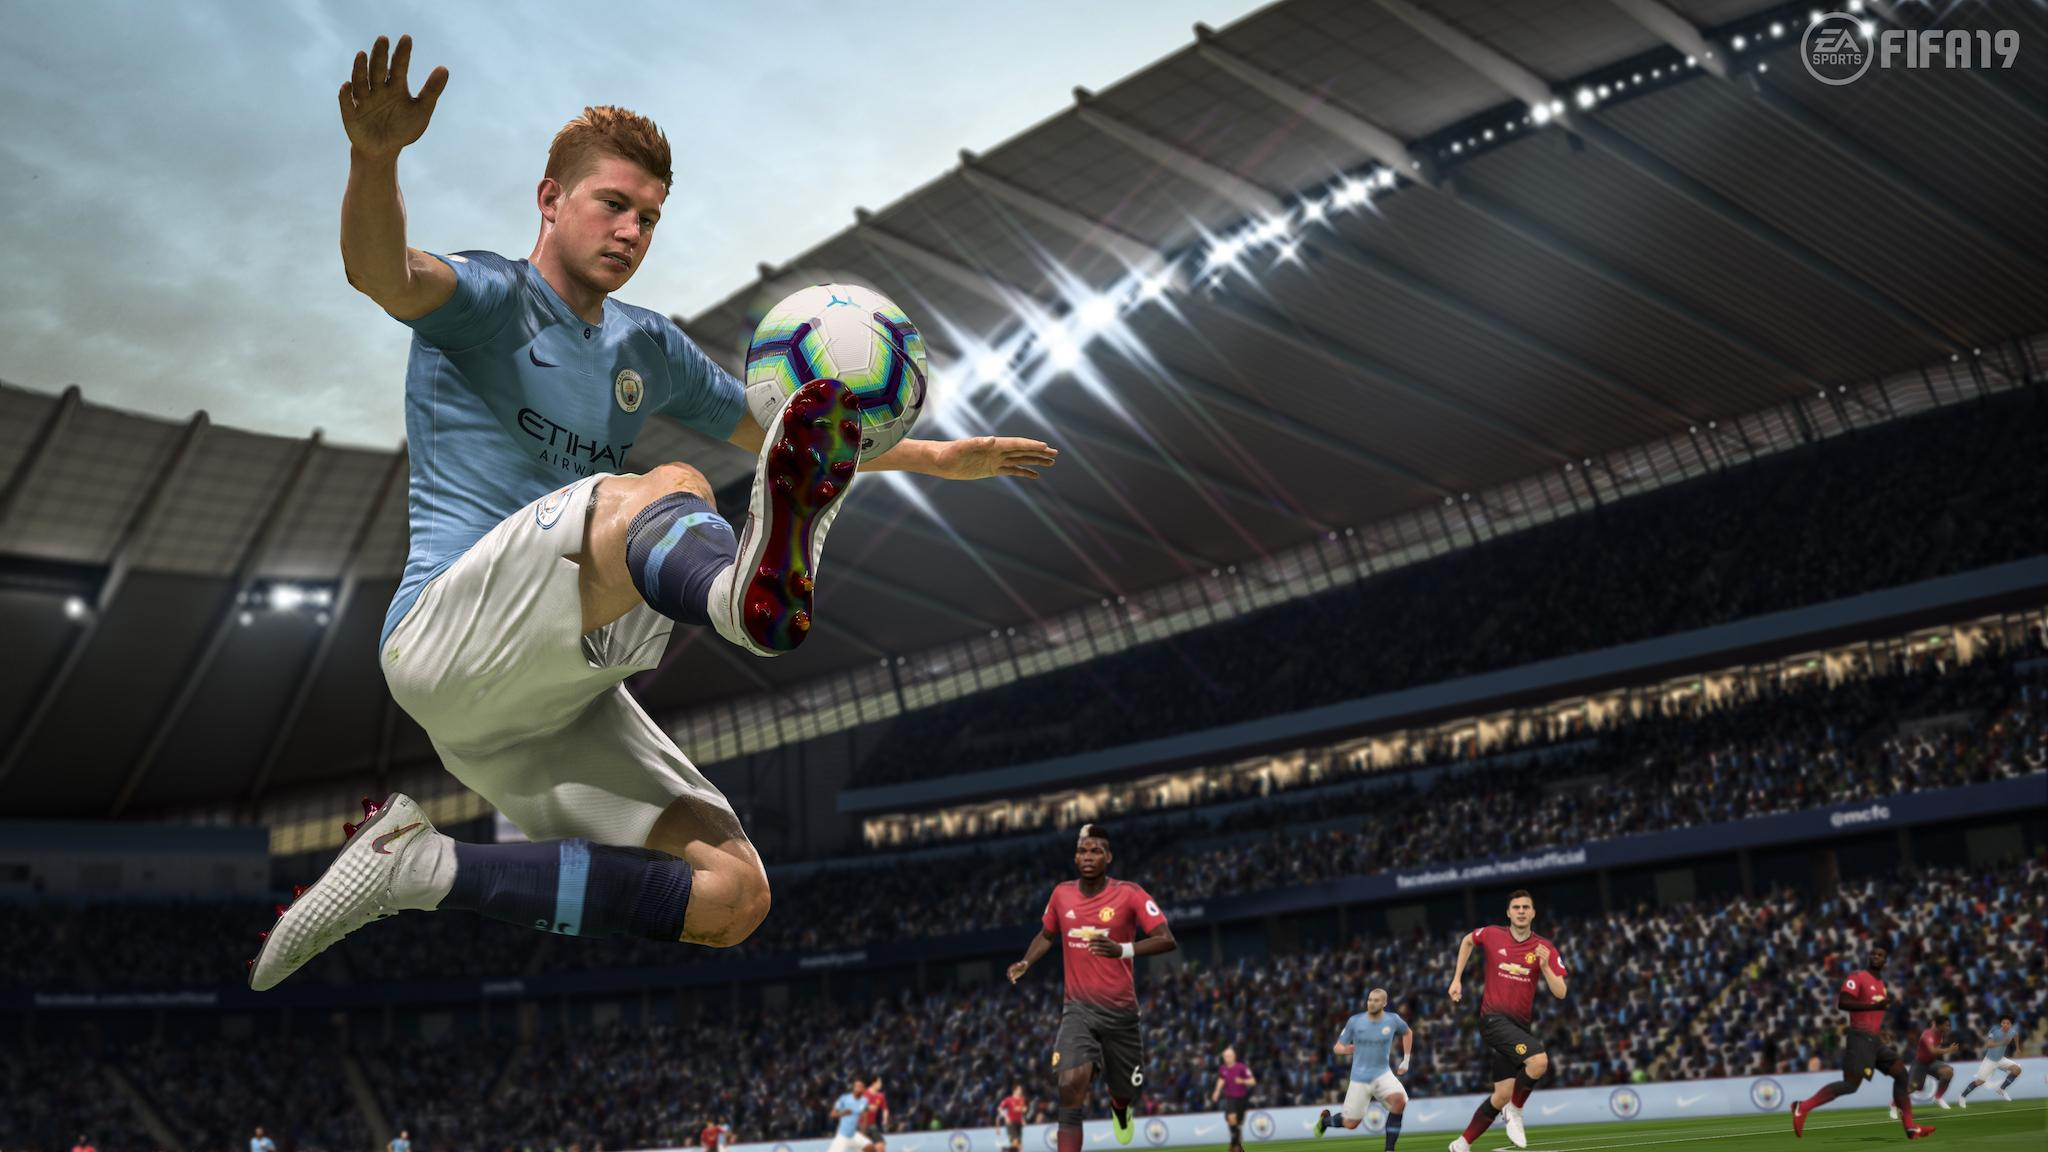 Fifa  Kick Off Mode Updates Make The Games Most Basic More Exciting